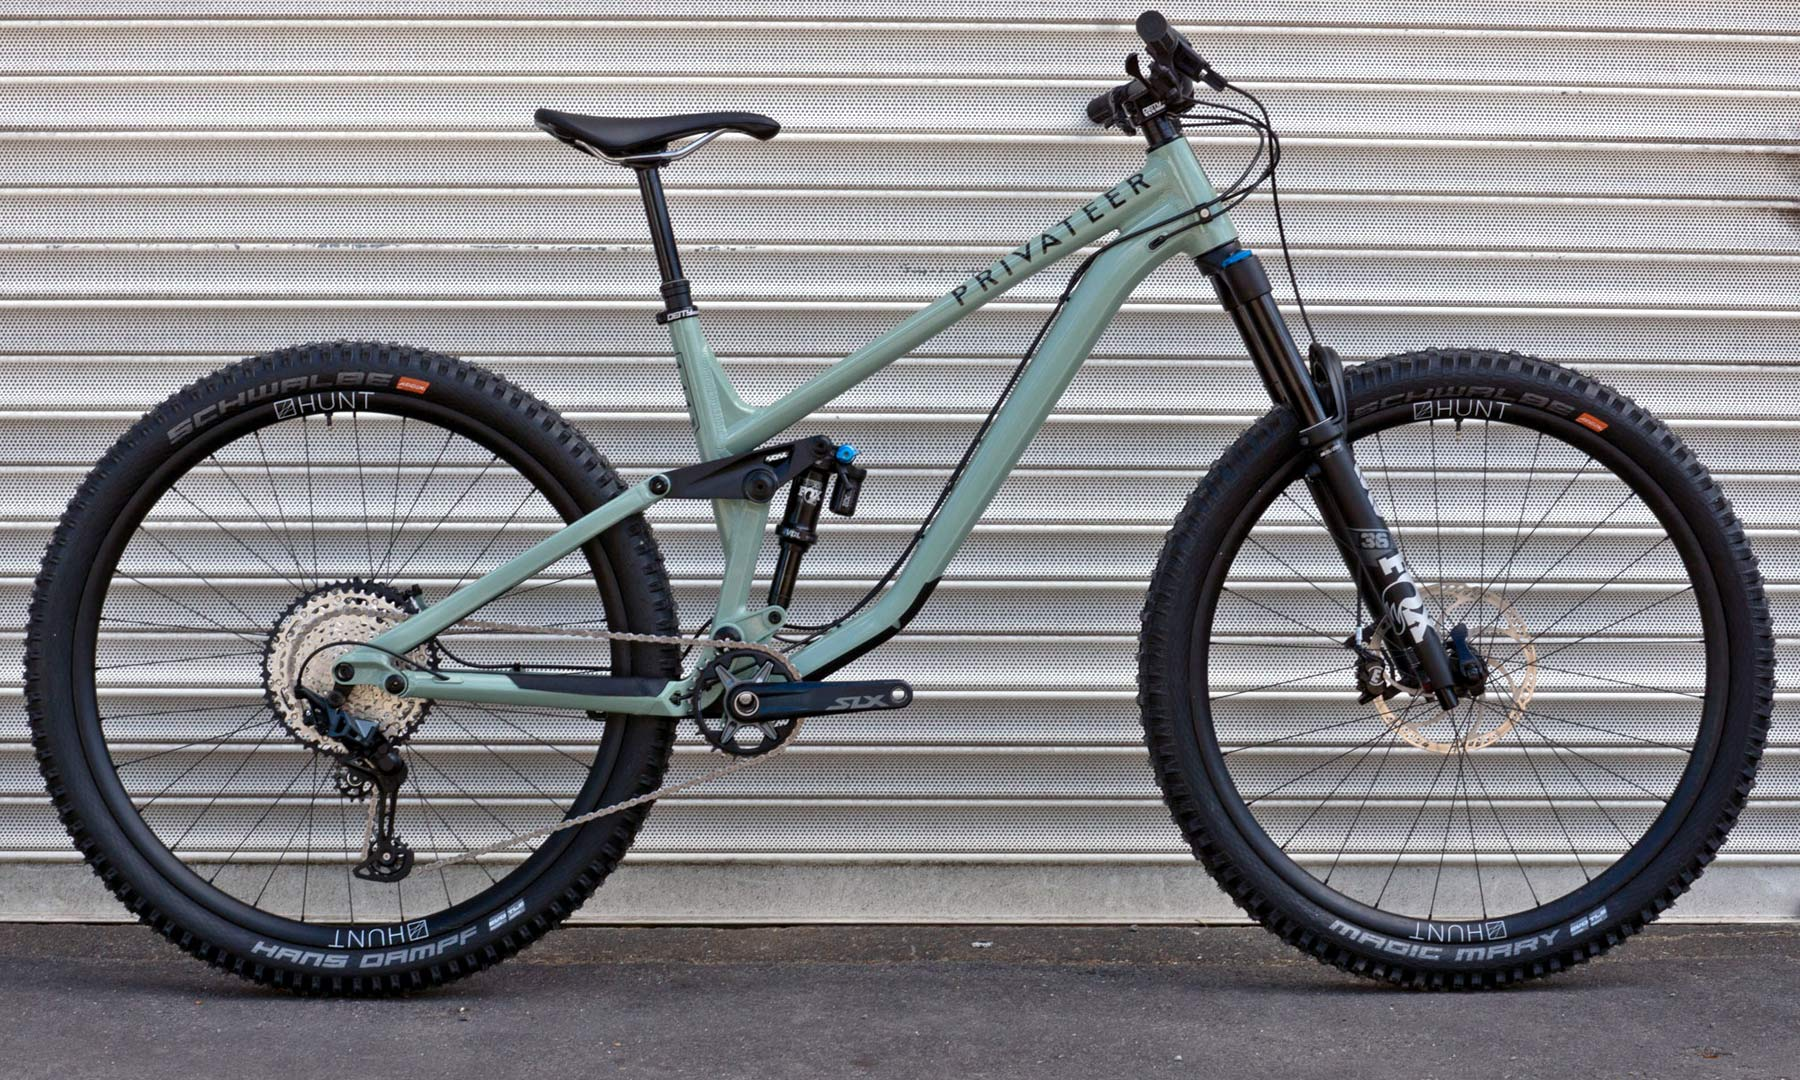 Privateer 141 all-mountain trail bike, affordable alloy 29er trail enduro all-mountain bike, Heritage Green complete bike